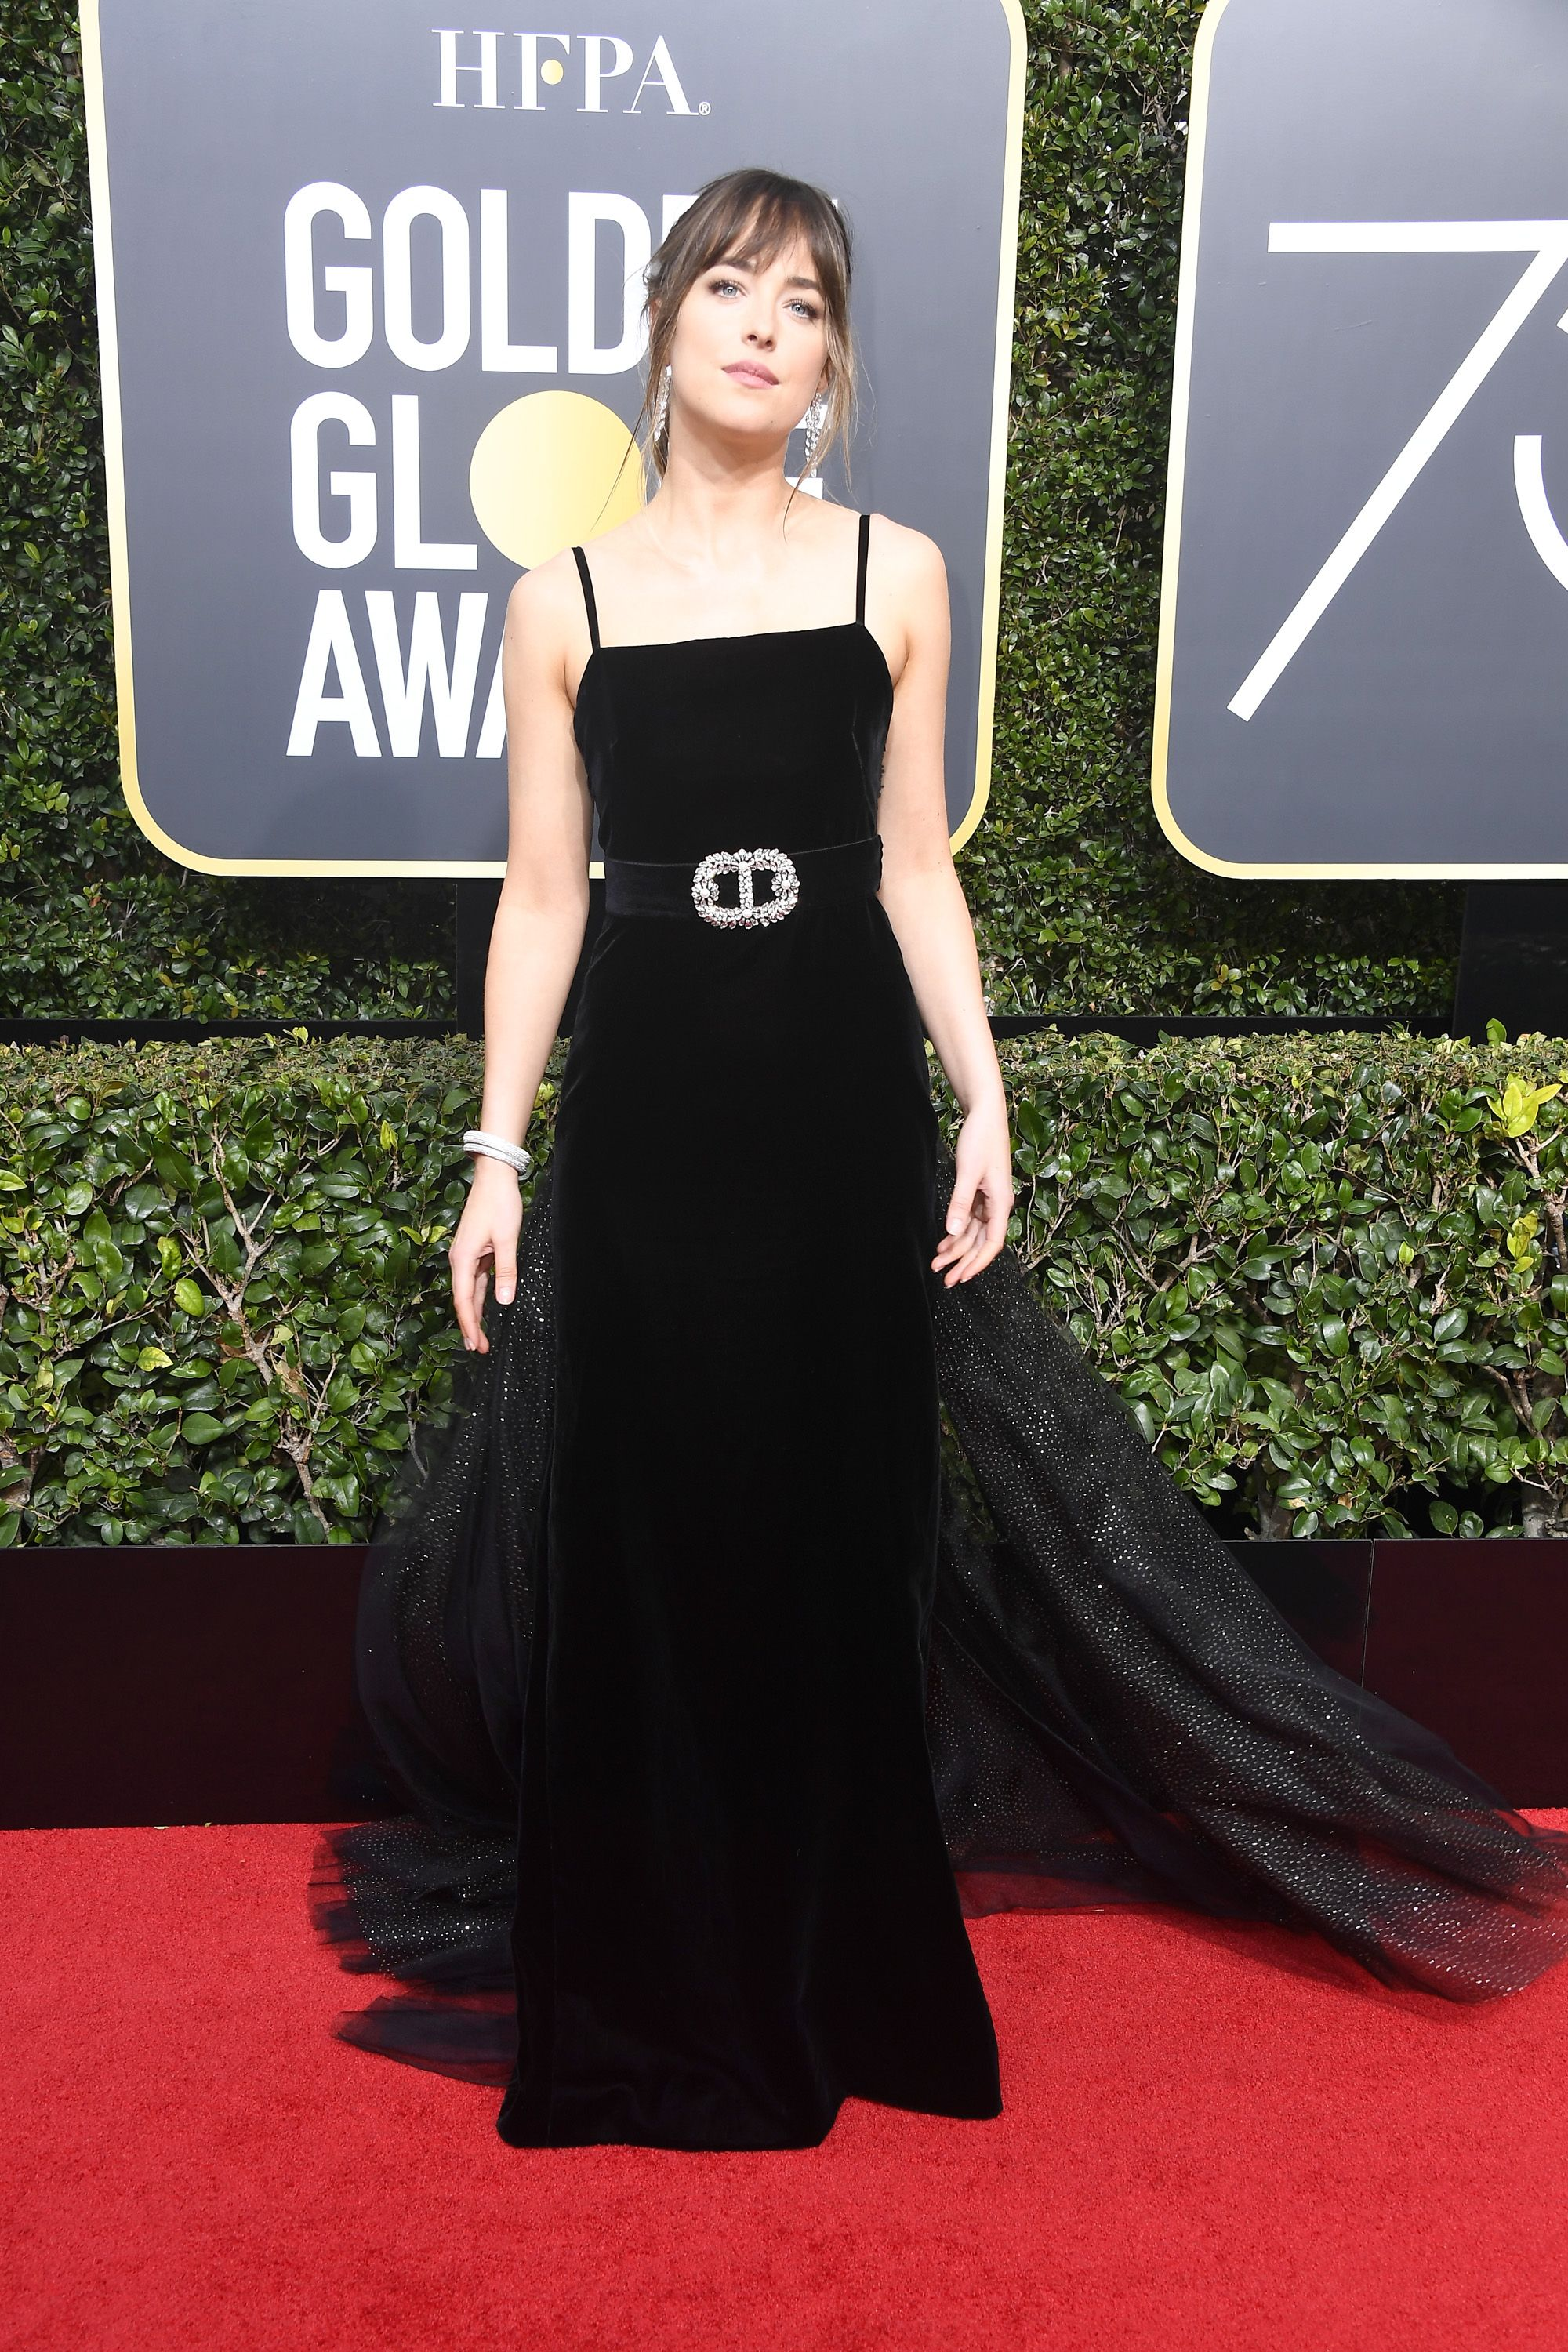 948f09e6738 Golden Globes 2018  The Best Red Carpet Looks